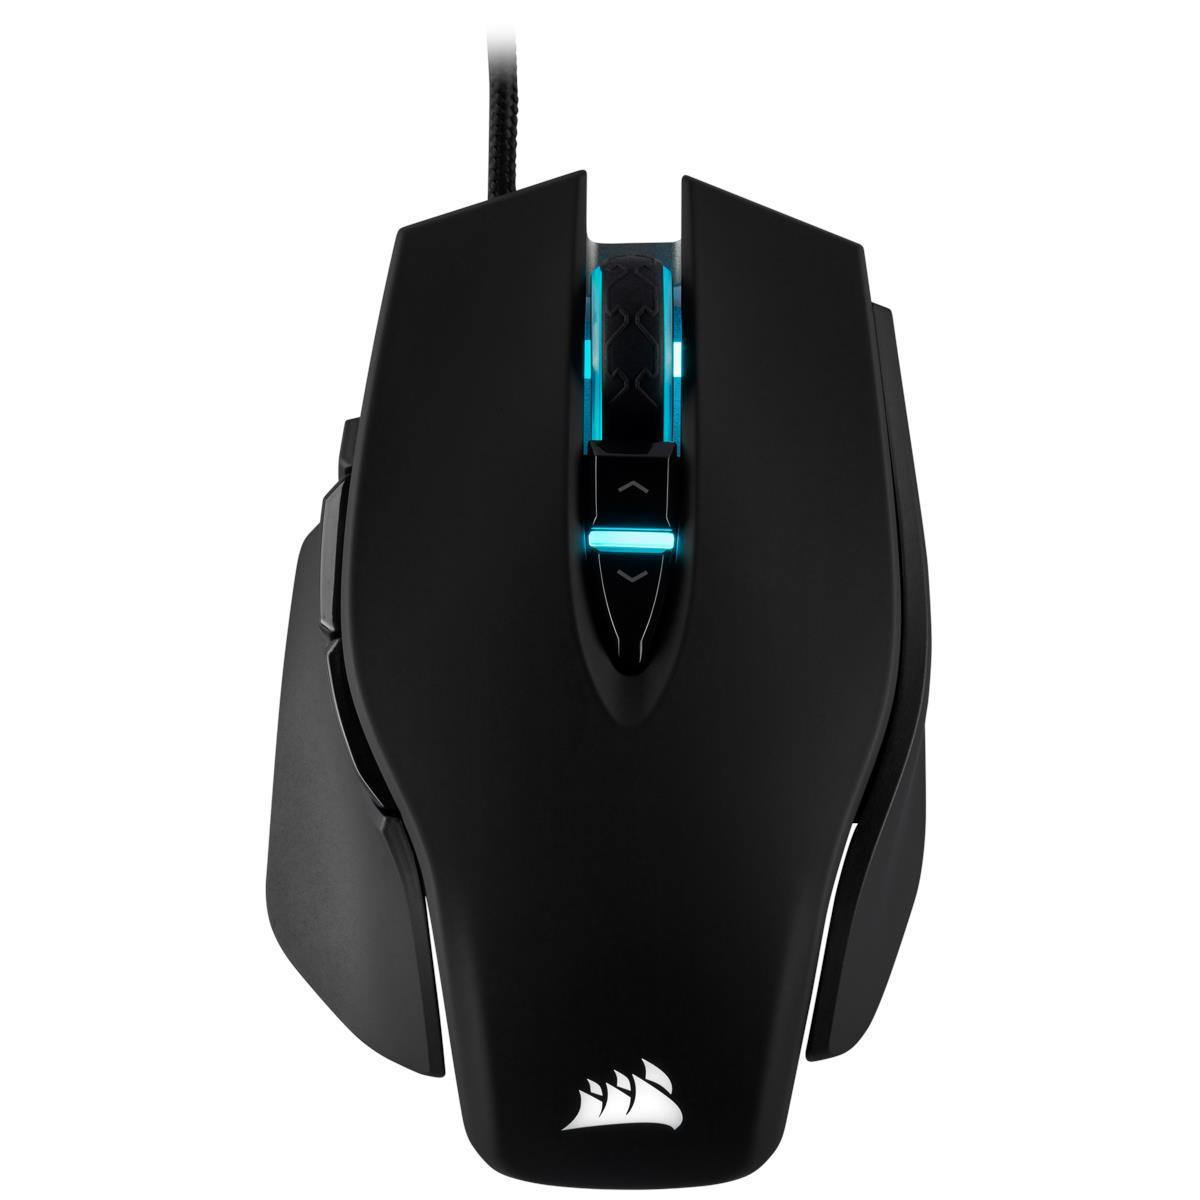 Corsair M65 RGB ELITE Tunable Gaming Mouse (Black)